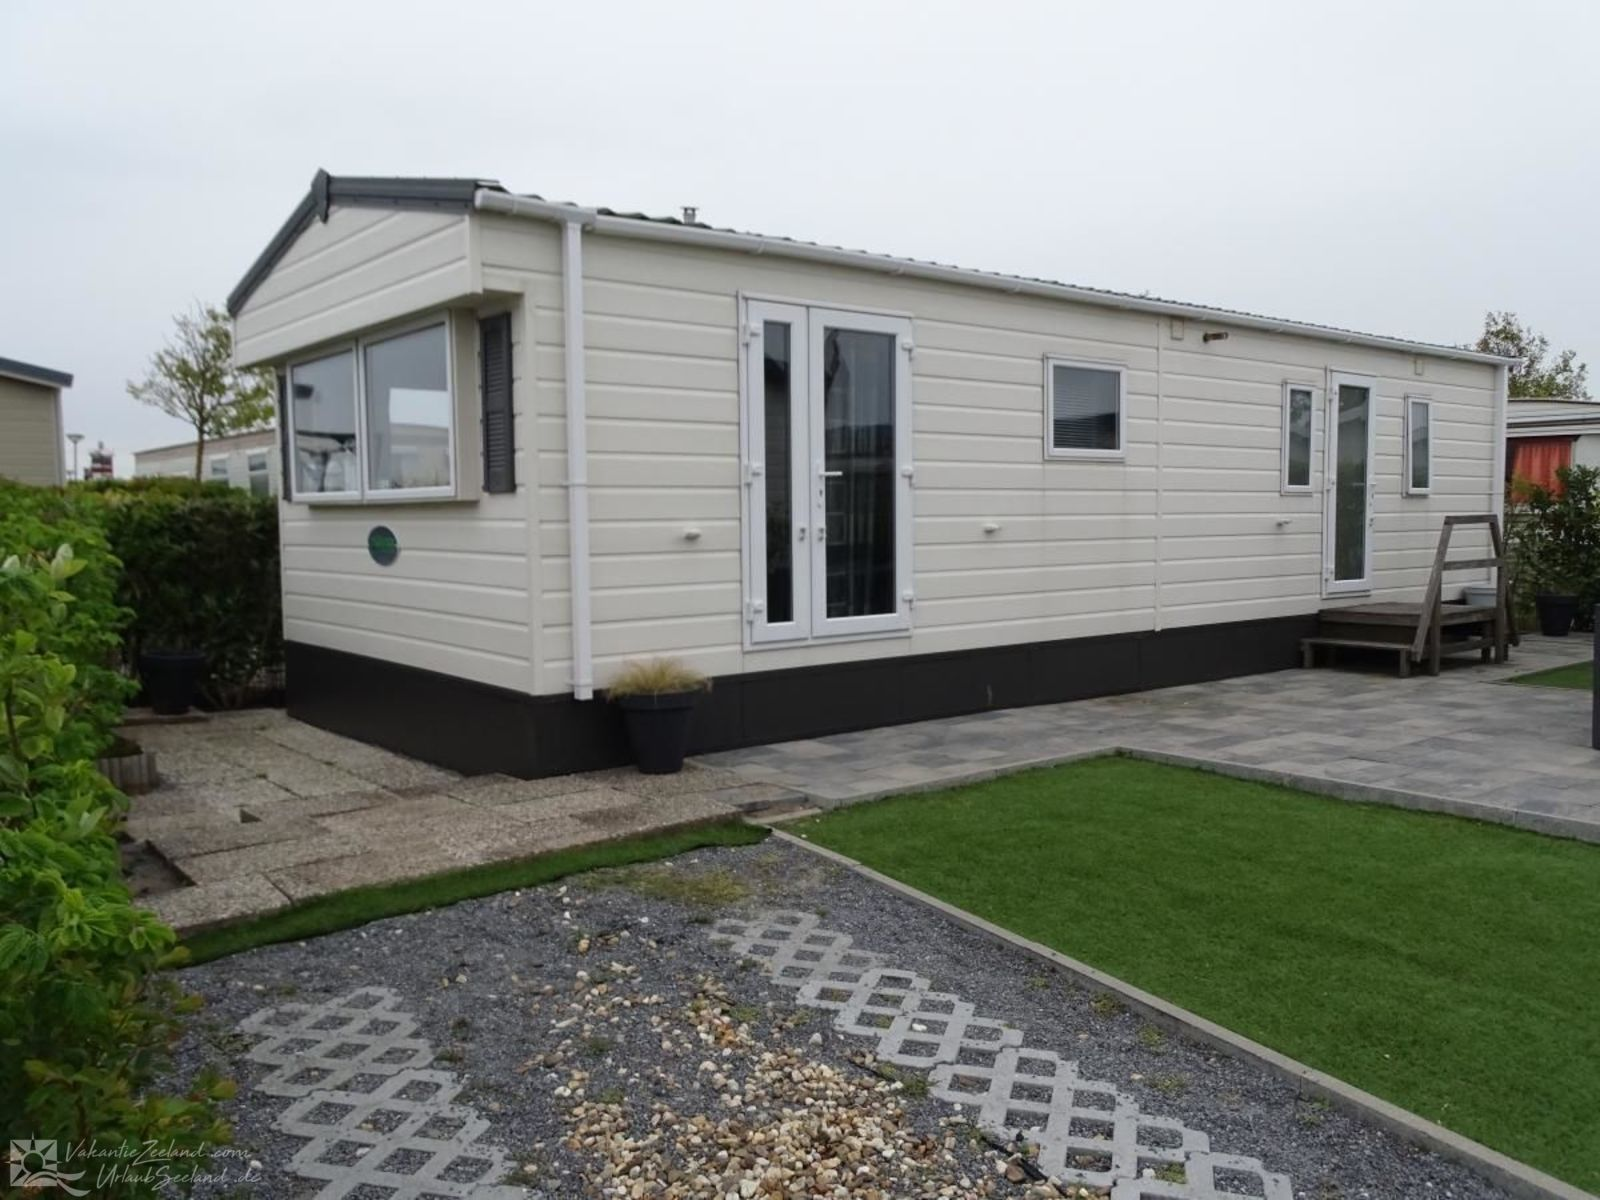 VZ615 Ferienchalet in Renesse